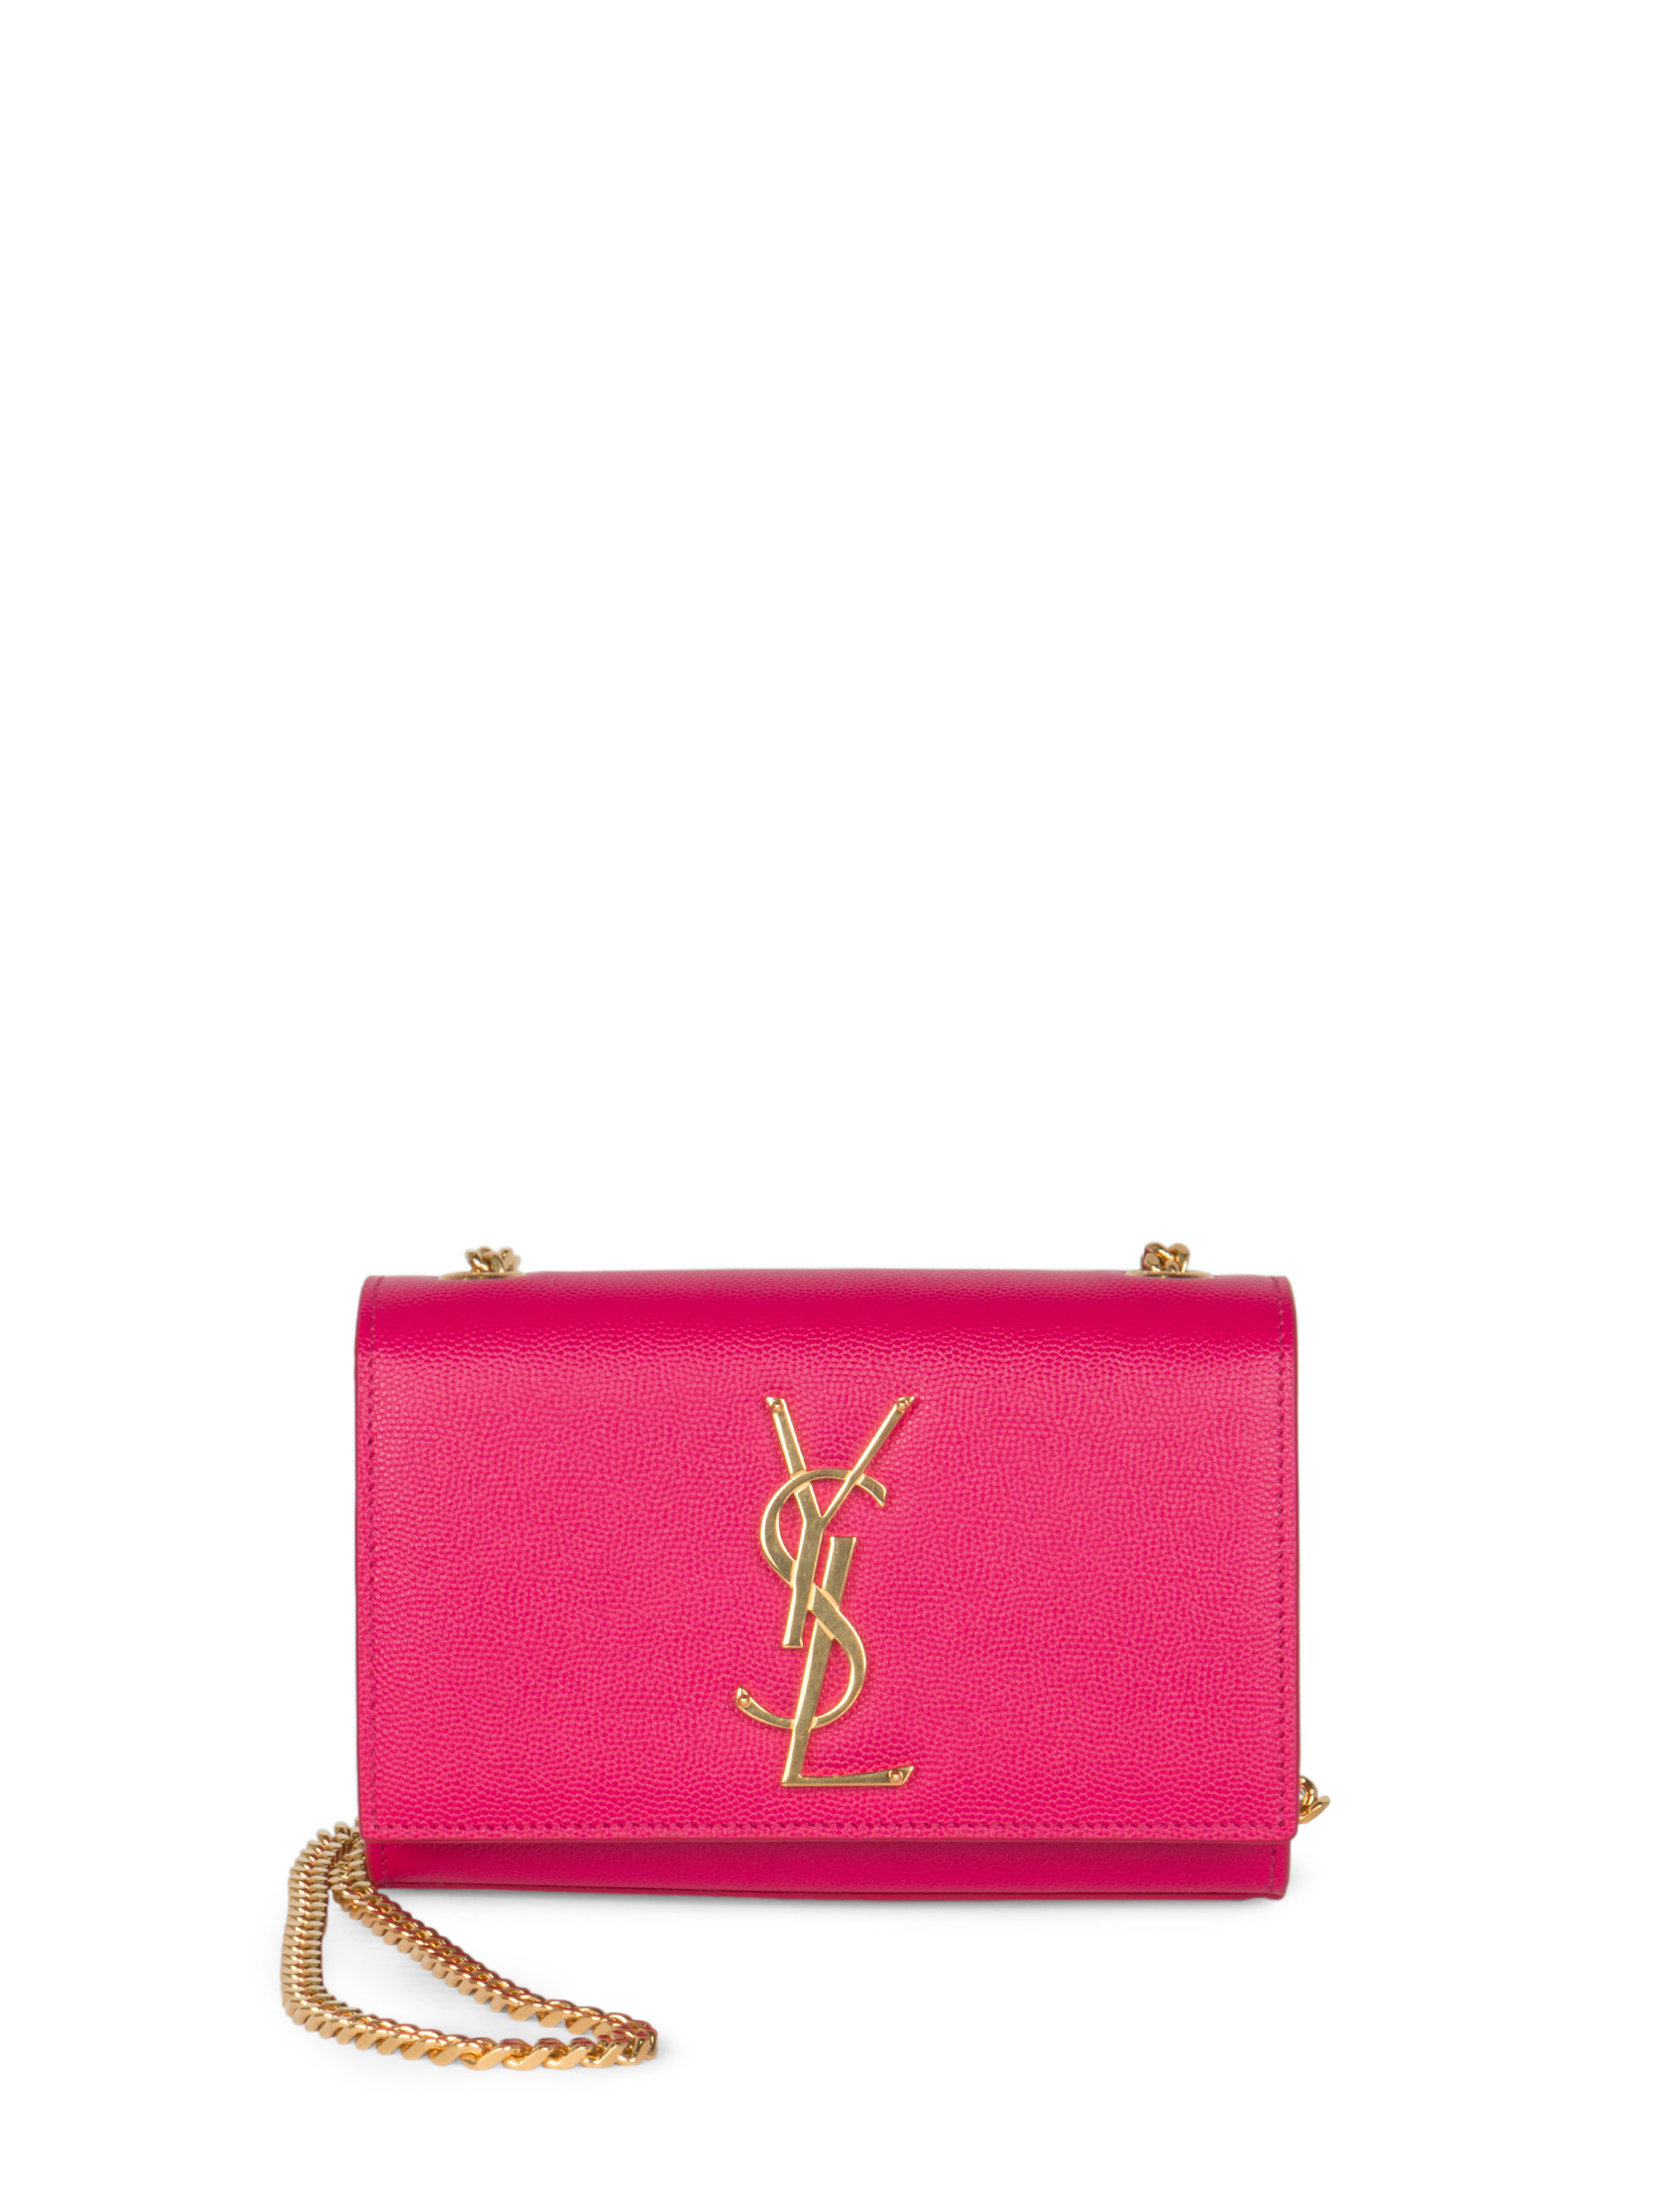 knockoff yves saint laurent clutch bags